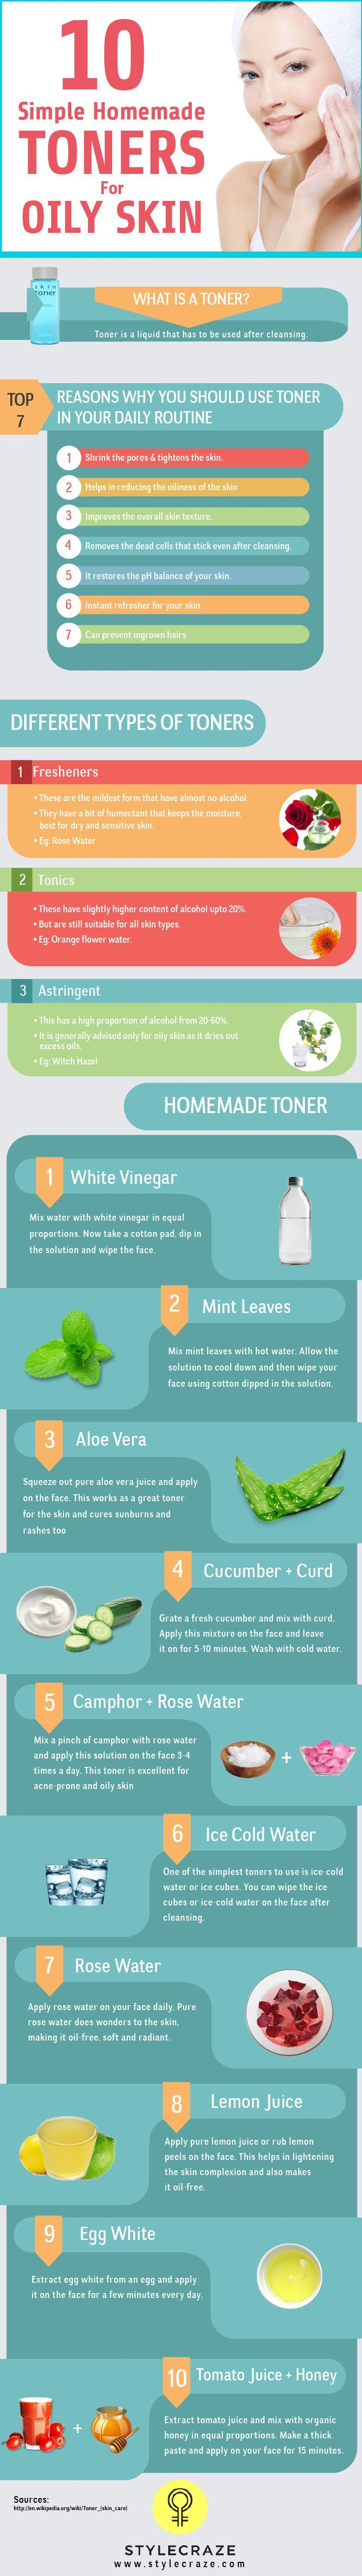 12 Simple Homemade Toners For Oily Skin